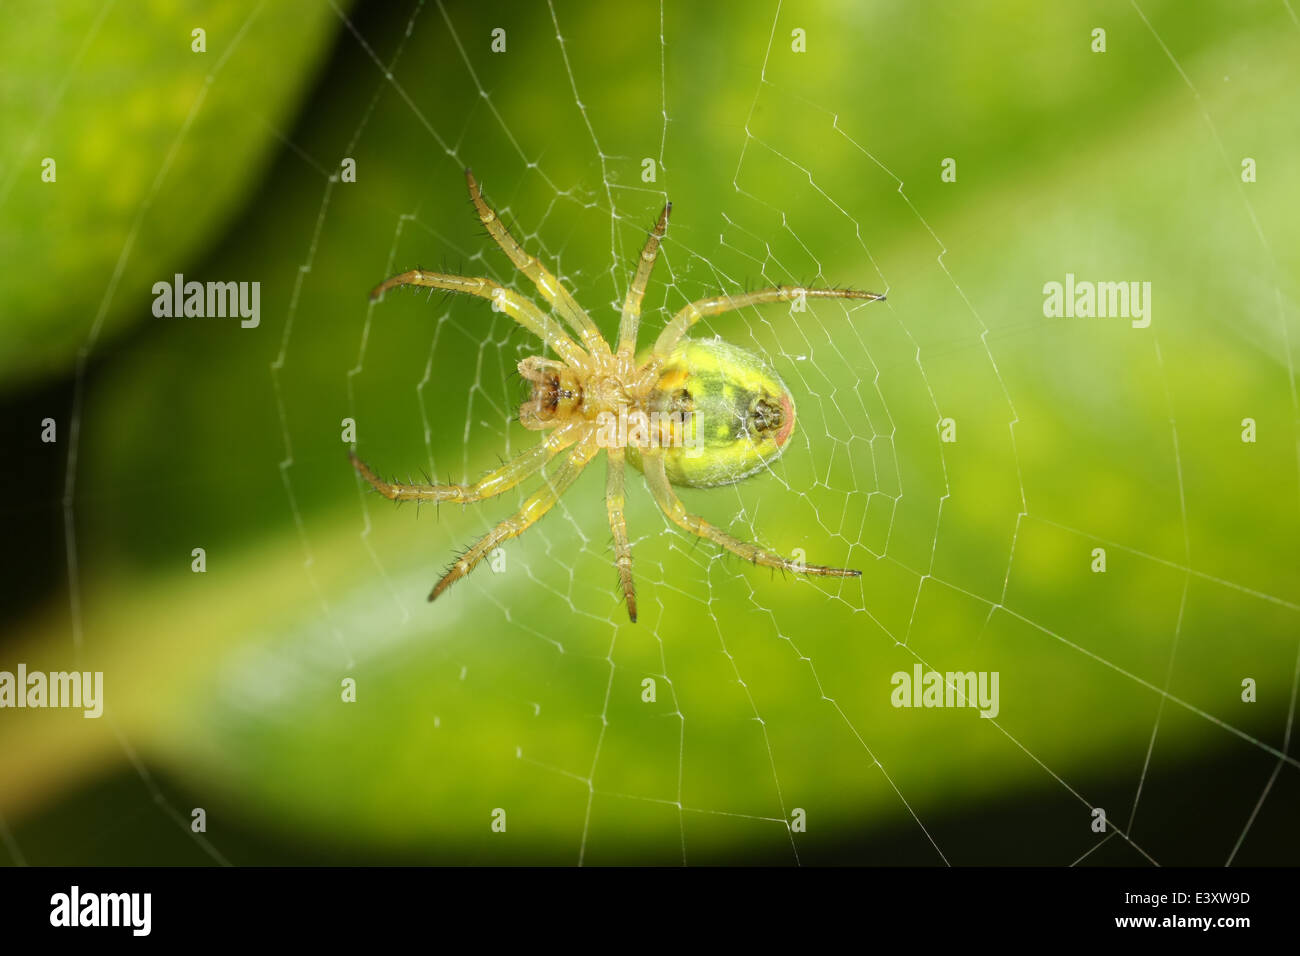 Male Cucumber spider (Araniella cucurbitina), part of the family Araneidae - orbweavers. - Stock Image